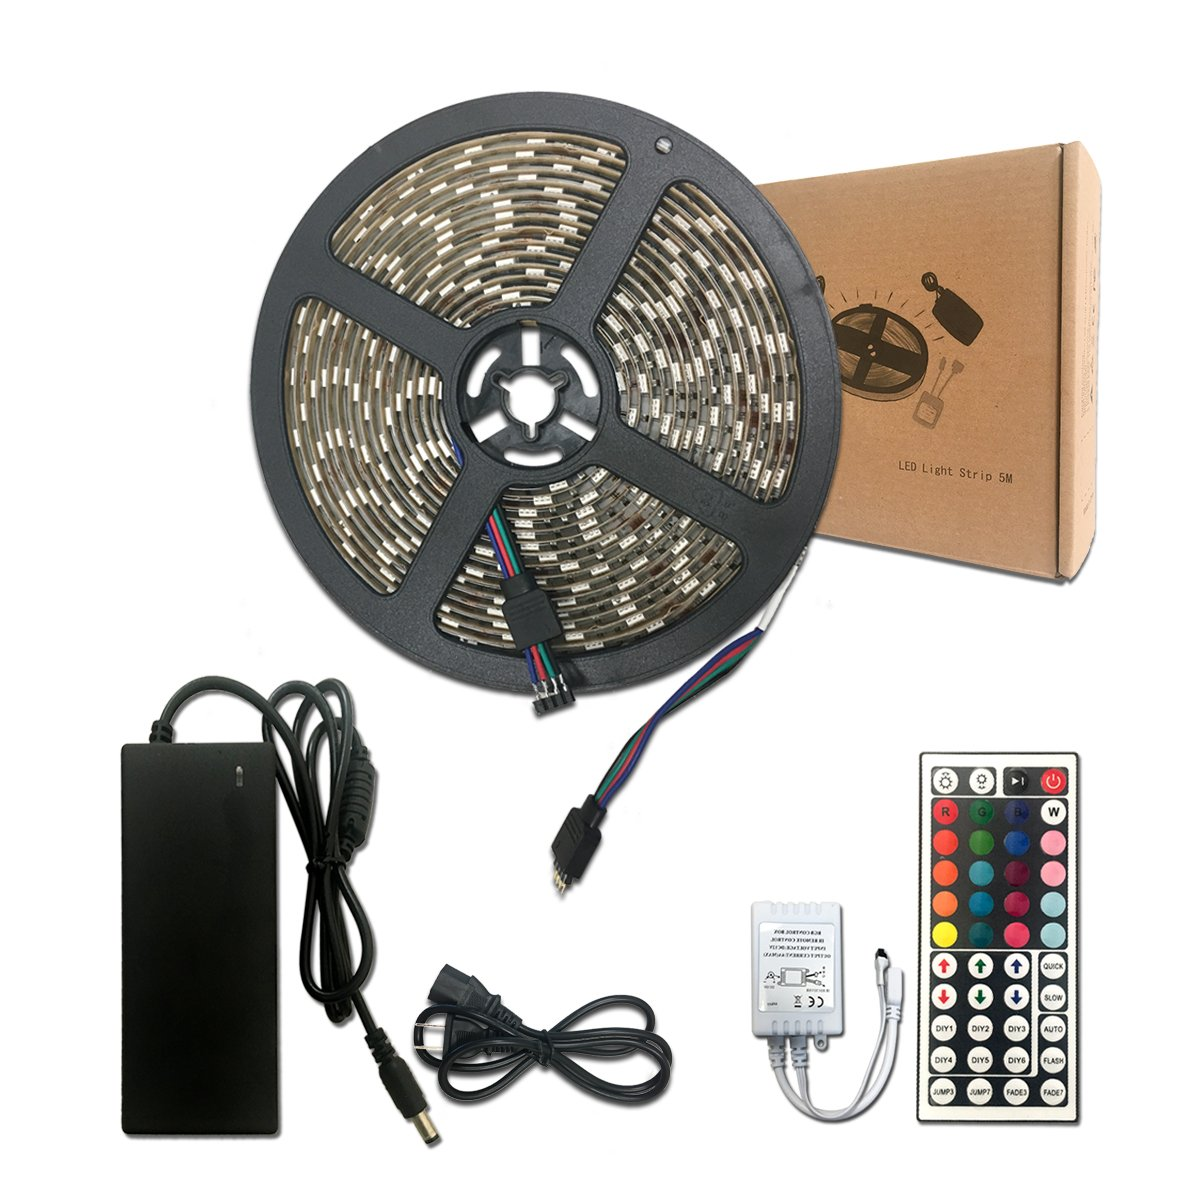 RP 2018 LED Strip Light Kit, 16.4ft 300LEDs Water-resistant Flexible Multicolor 5050 RGB Lighting, 12V5A Power Adapter, 44 Key Remote Control. For Indoor/Outdoor/Holiday/Home/Store/Party Decoration